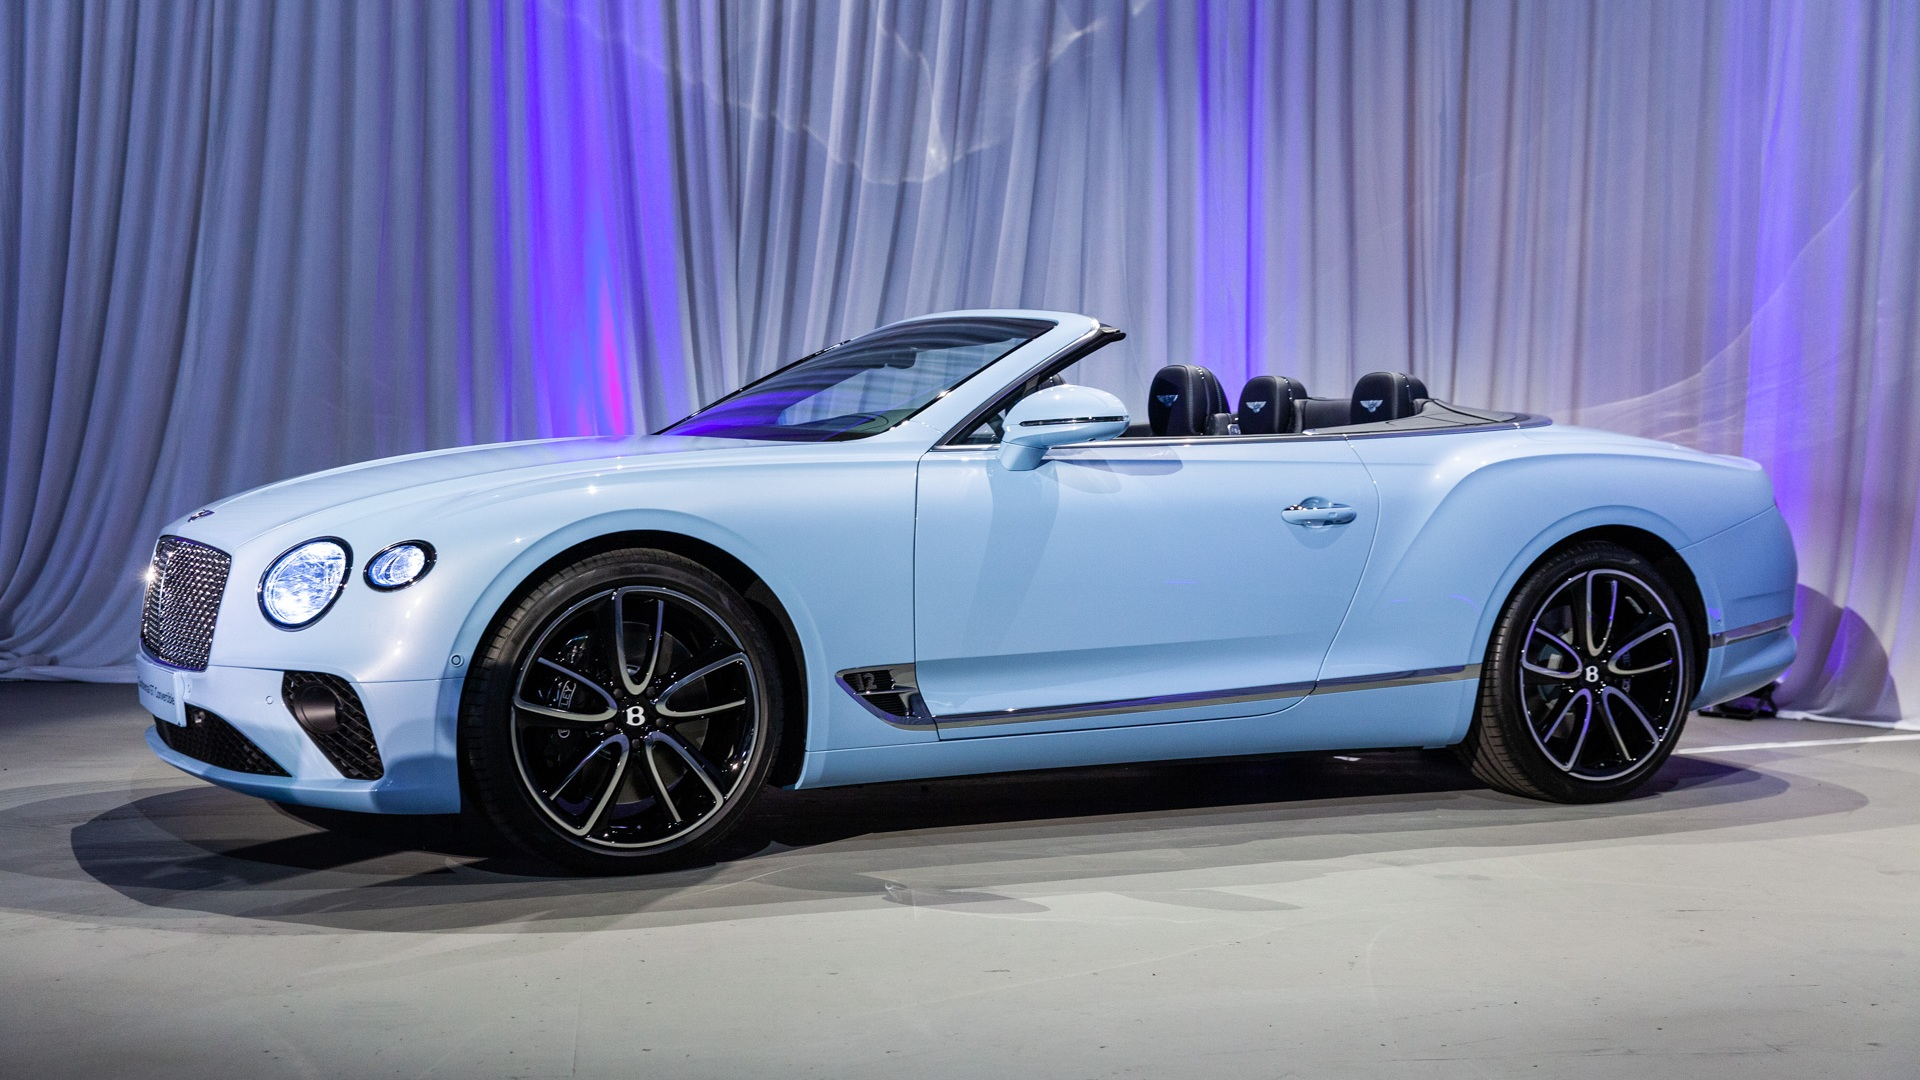 84 All New 2020 Bentley Continental GT Images